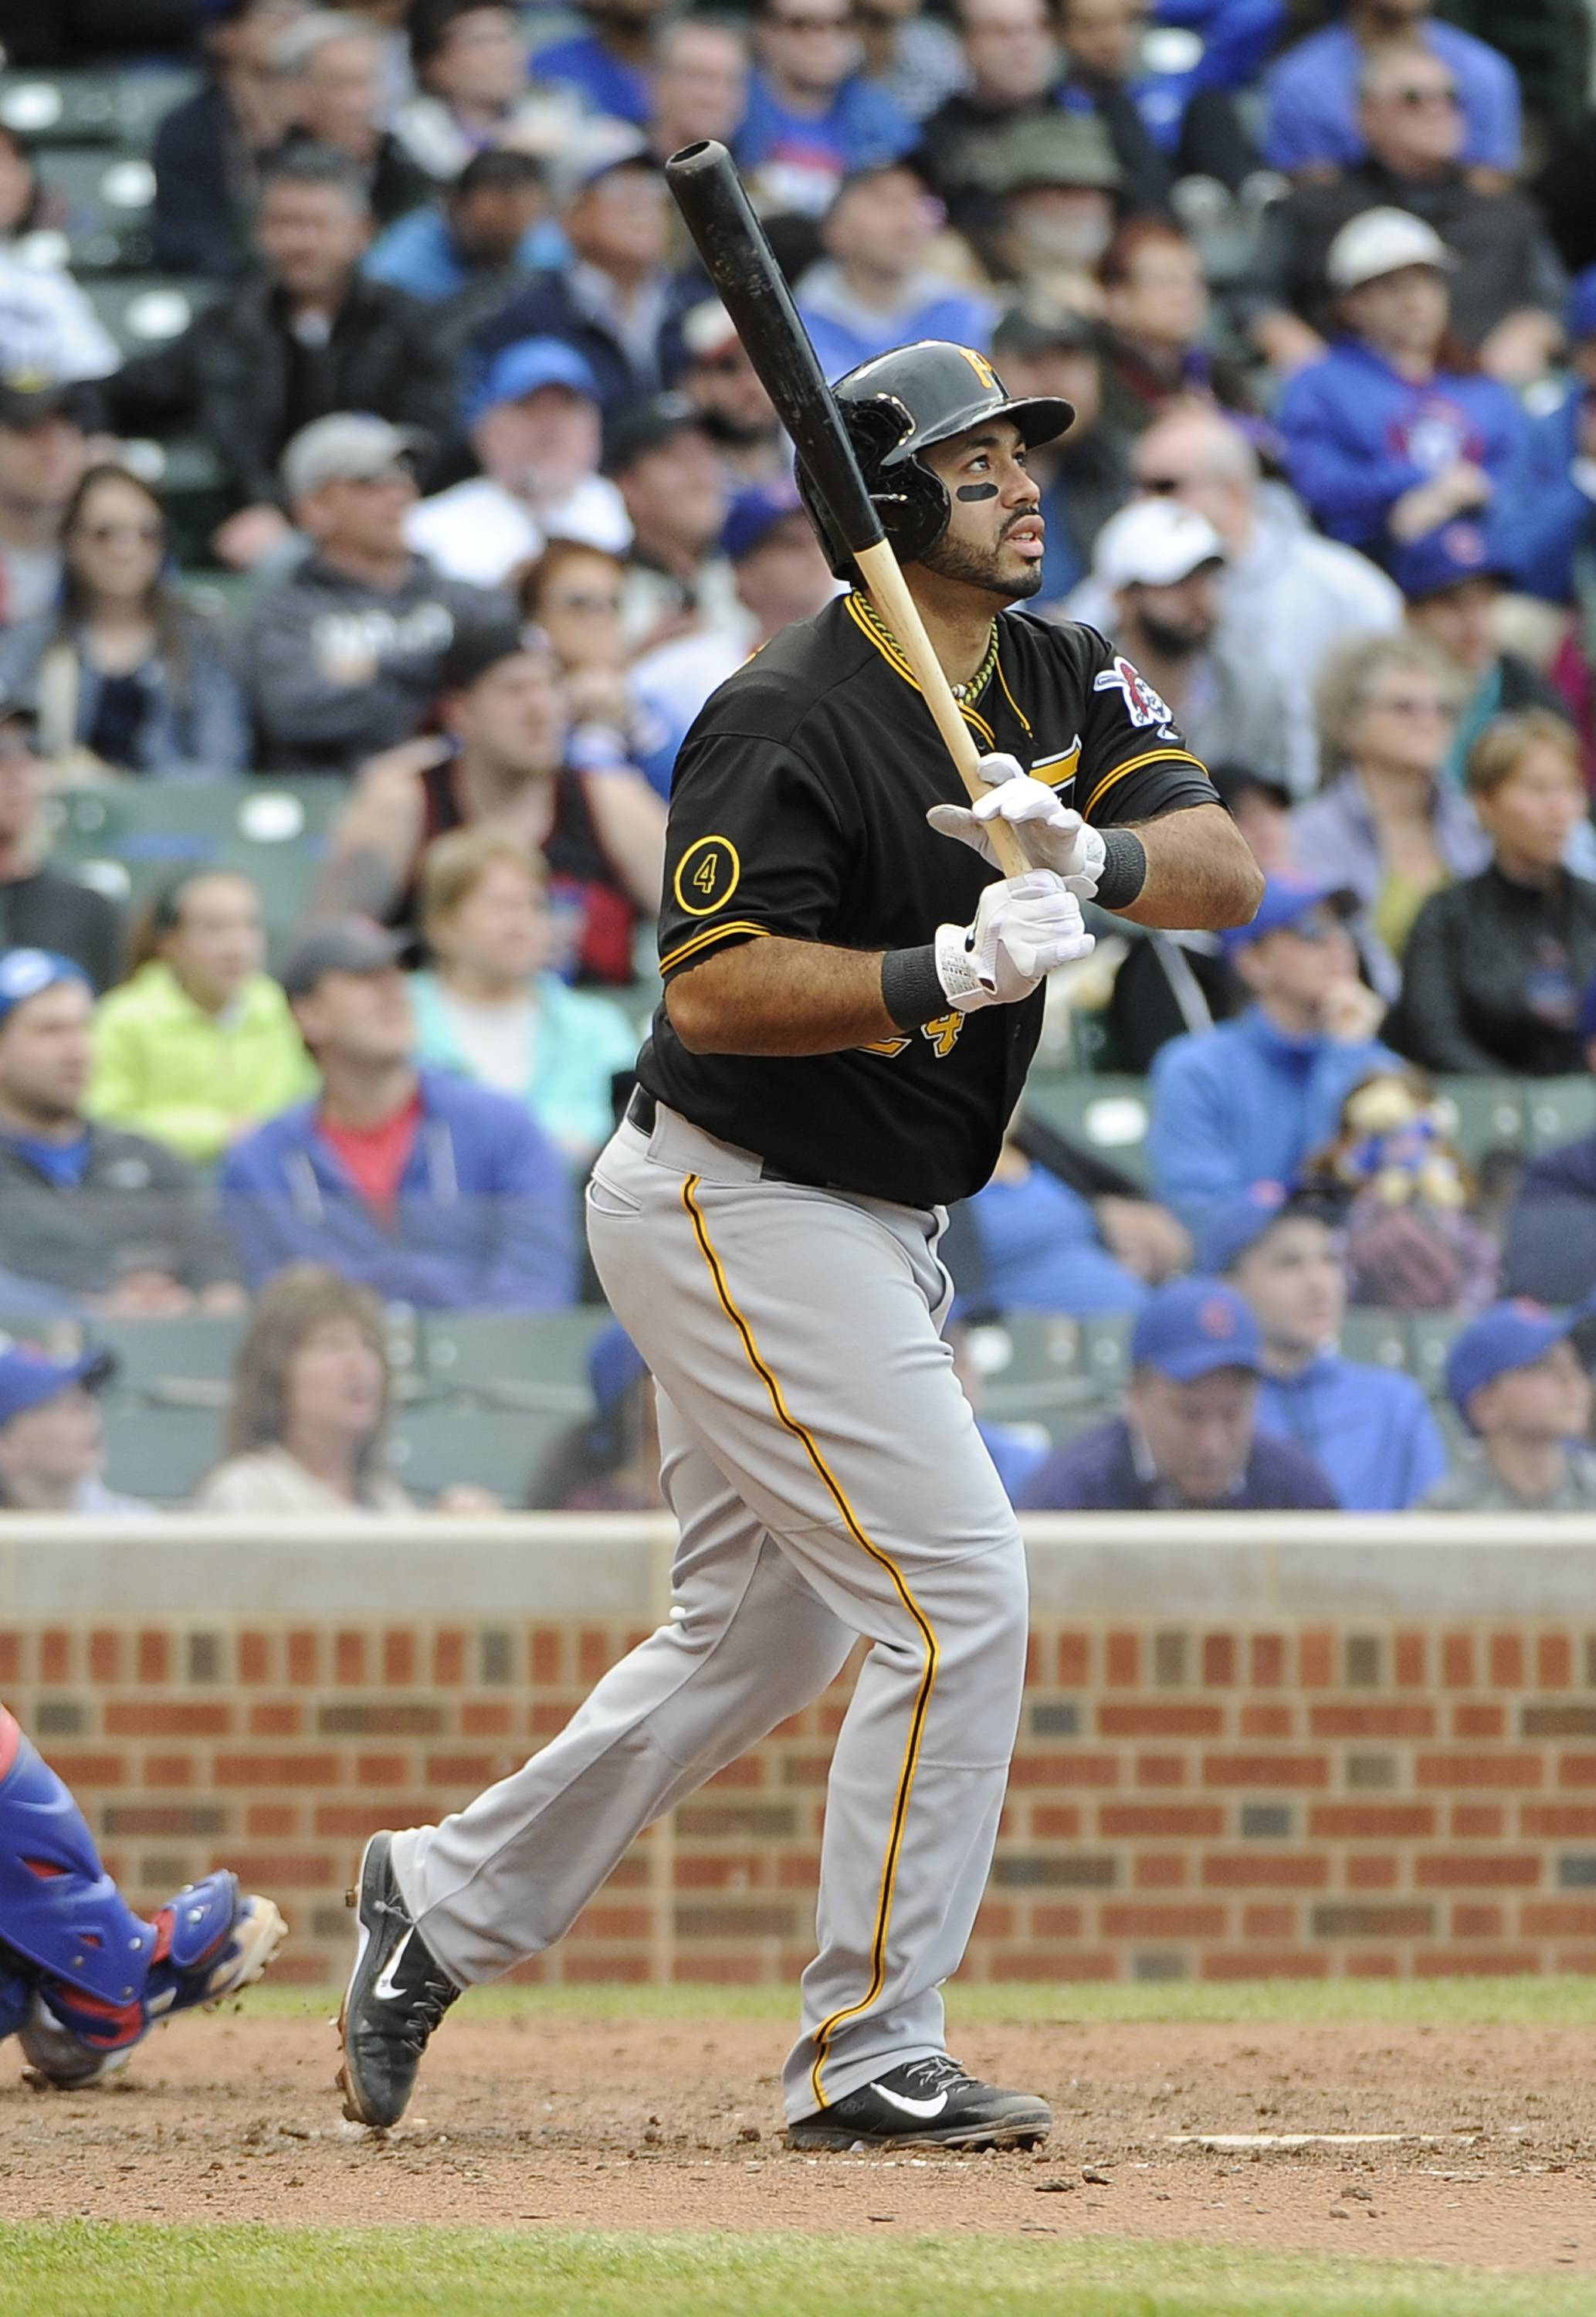 Pittsburgh Pirates' Pedro Alvarez watches his three-run home run against the Chicago Cubs during the seventh inning of a baseball game on Thursday, April 10, 2014, in Chicago. (AP Photo/David Banks)